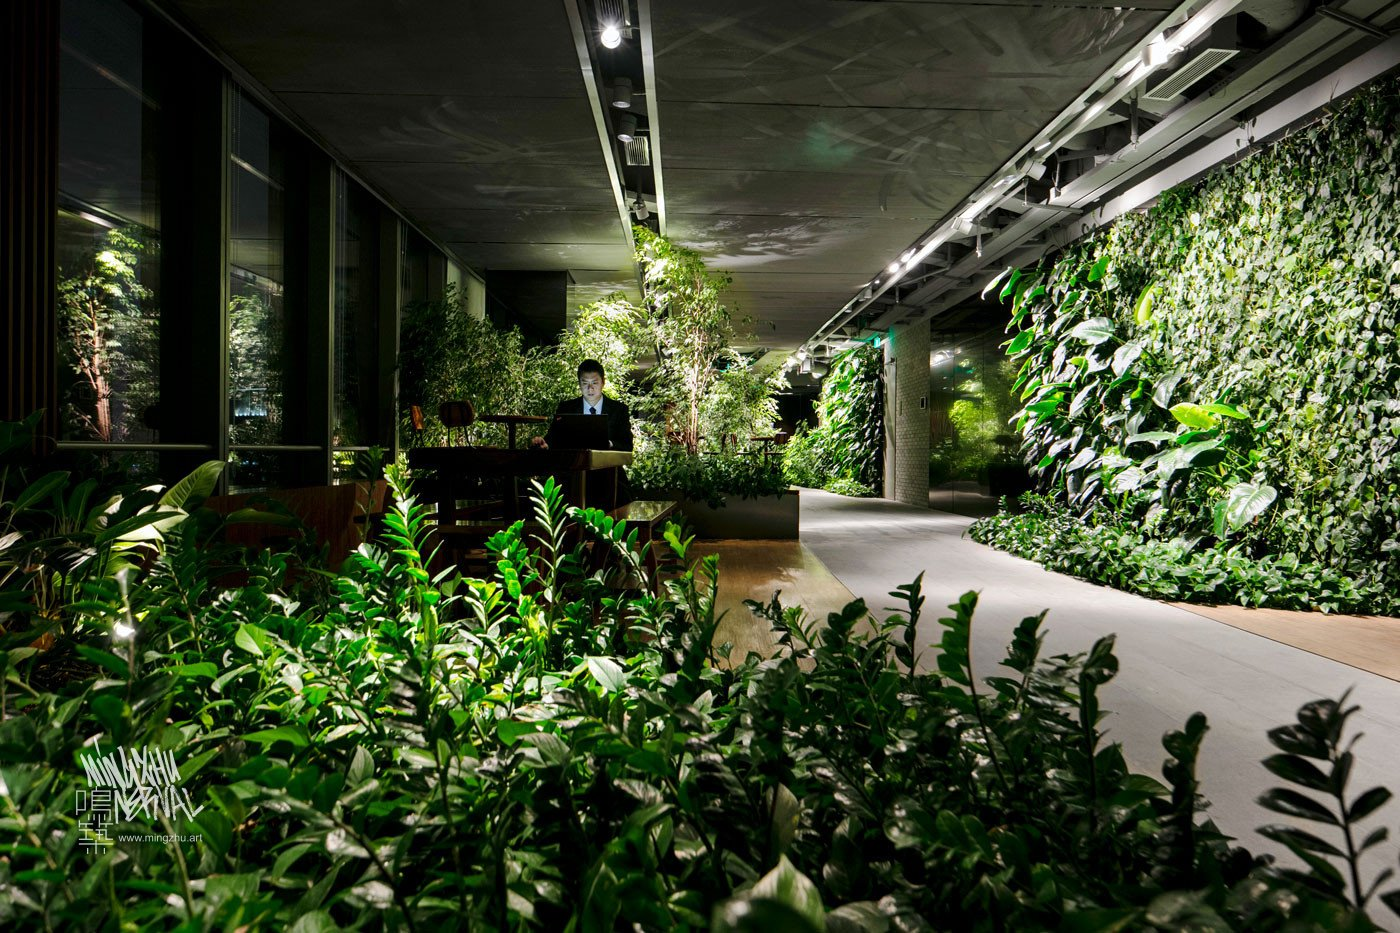 Mingzhu Nerval vertical living wall experts created the best garden design art for the Hines offices in Shanghai, 2016